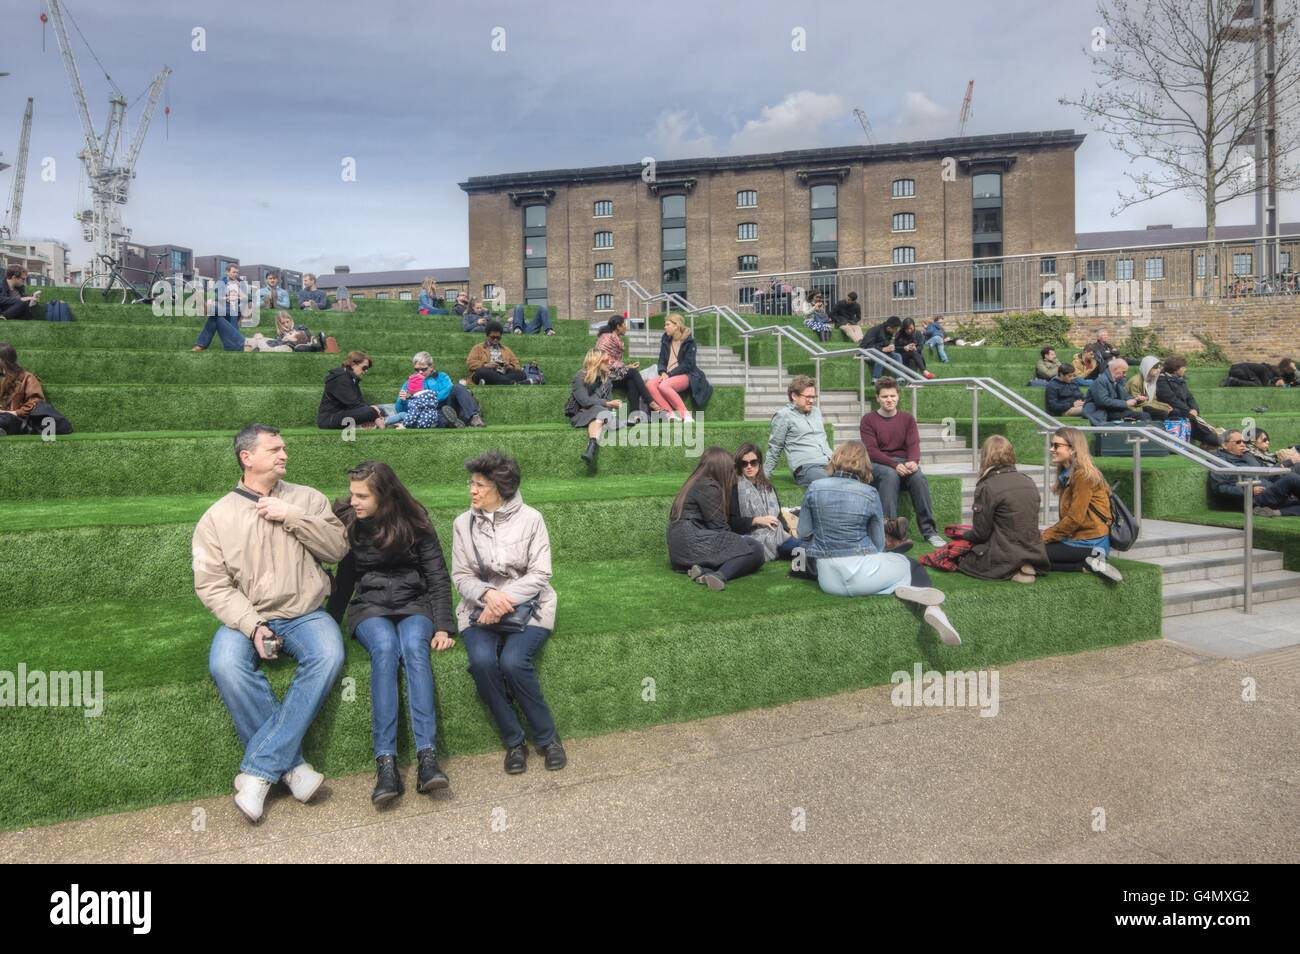 Granary Square, King's Cross - Stock Image